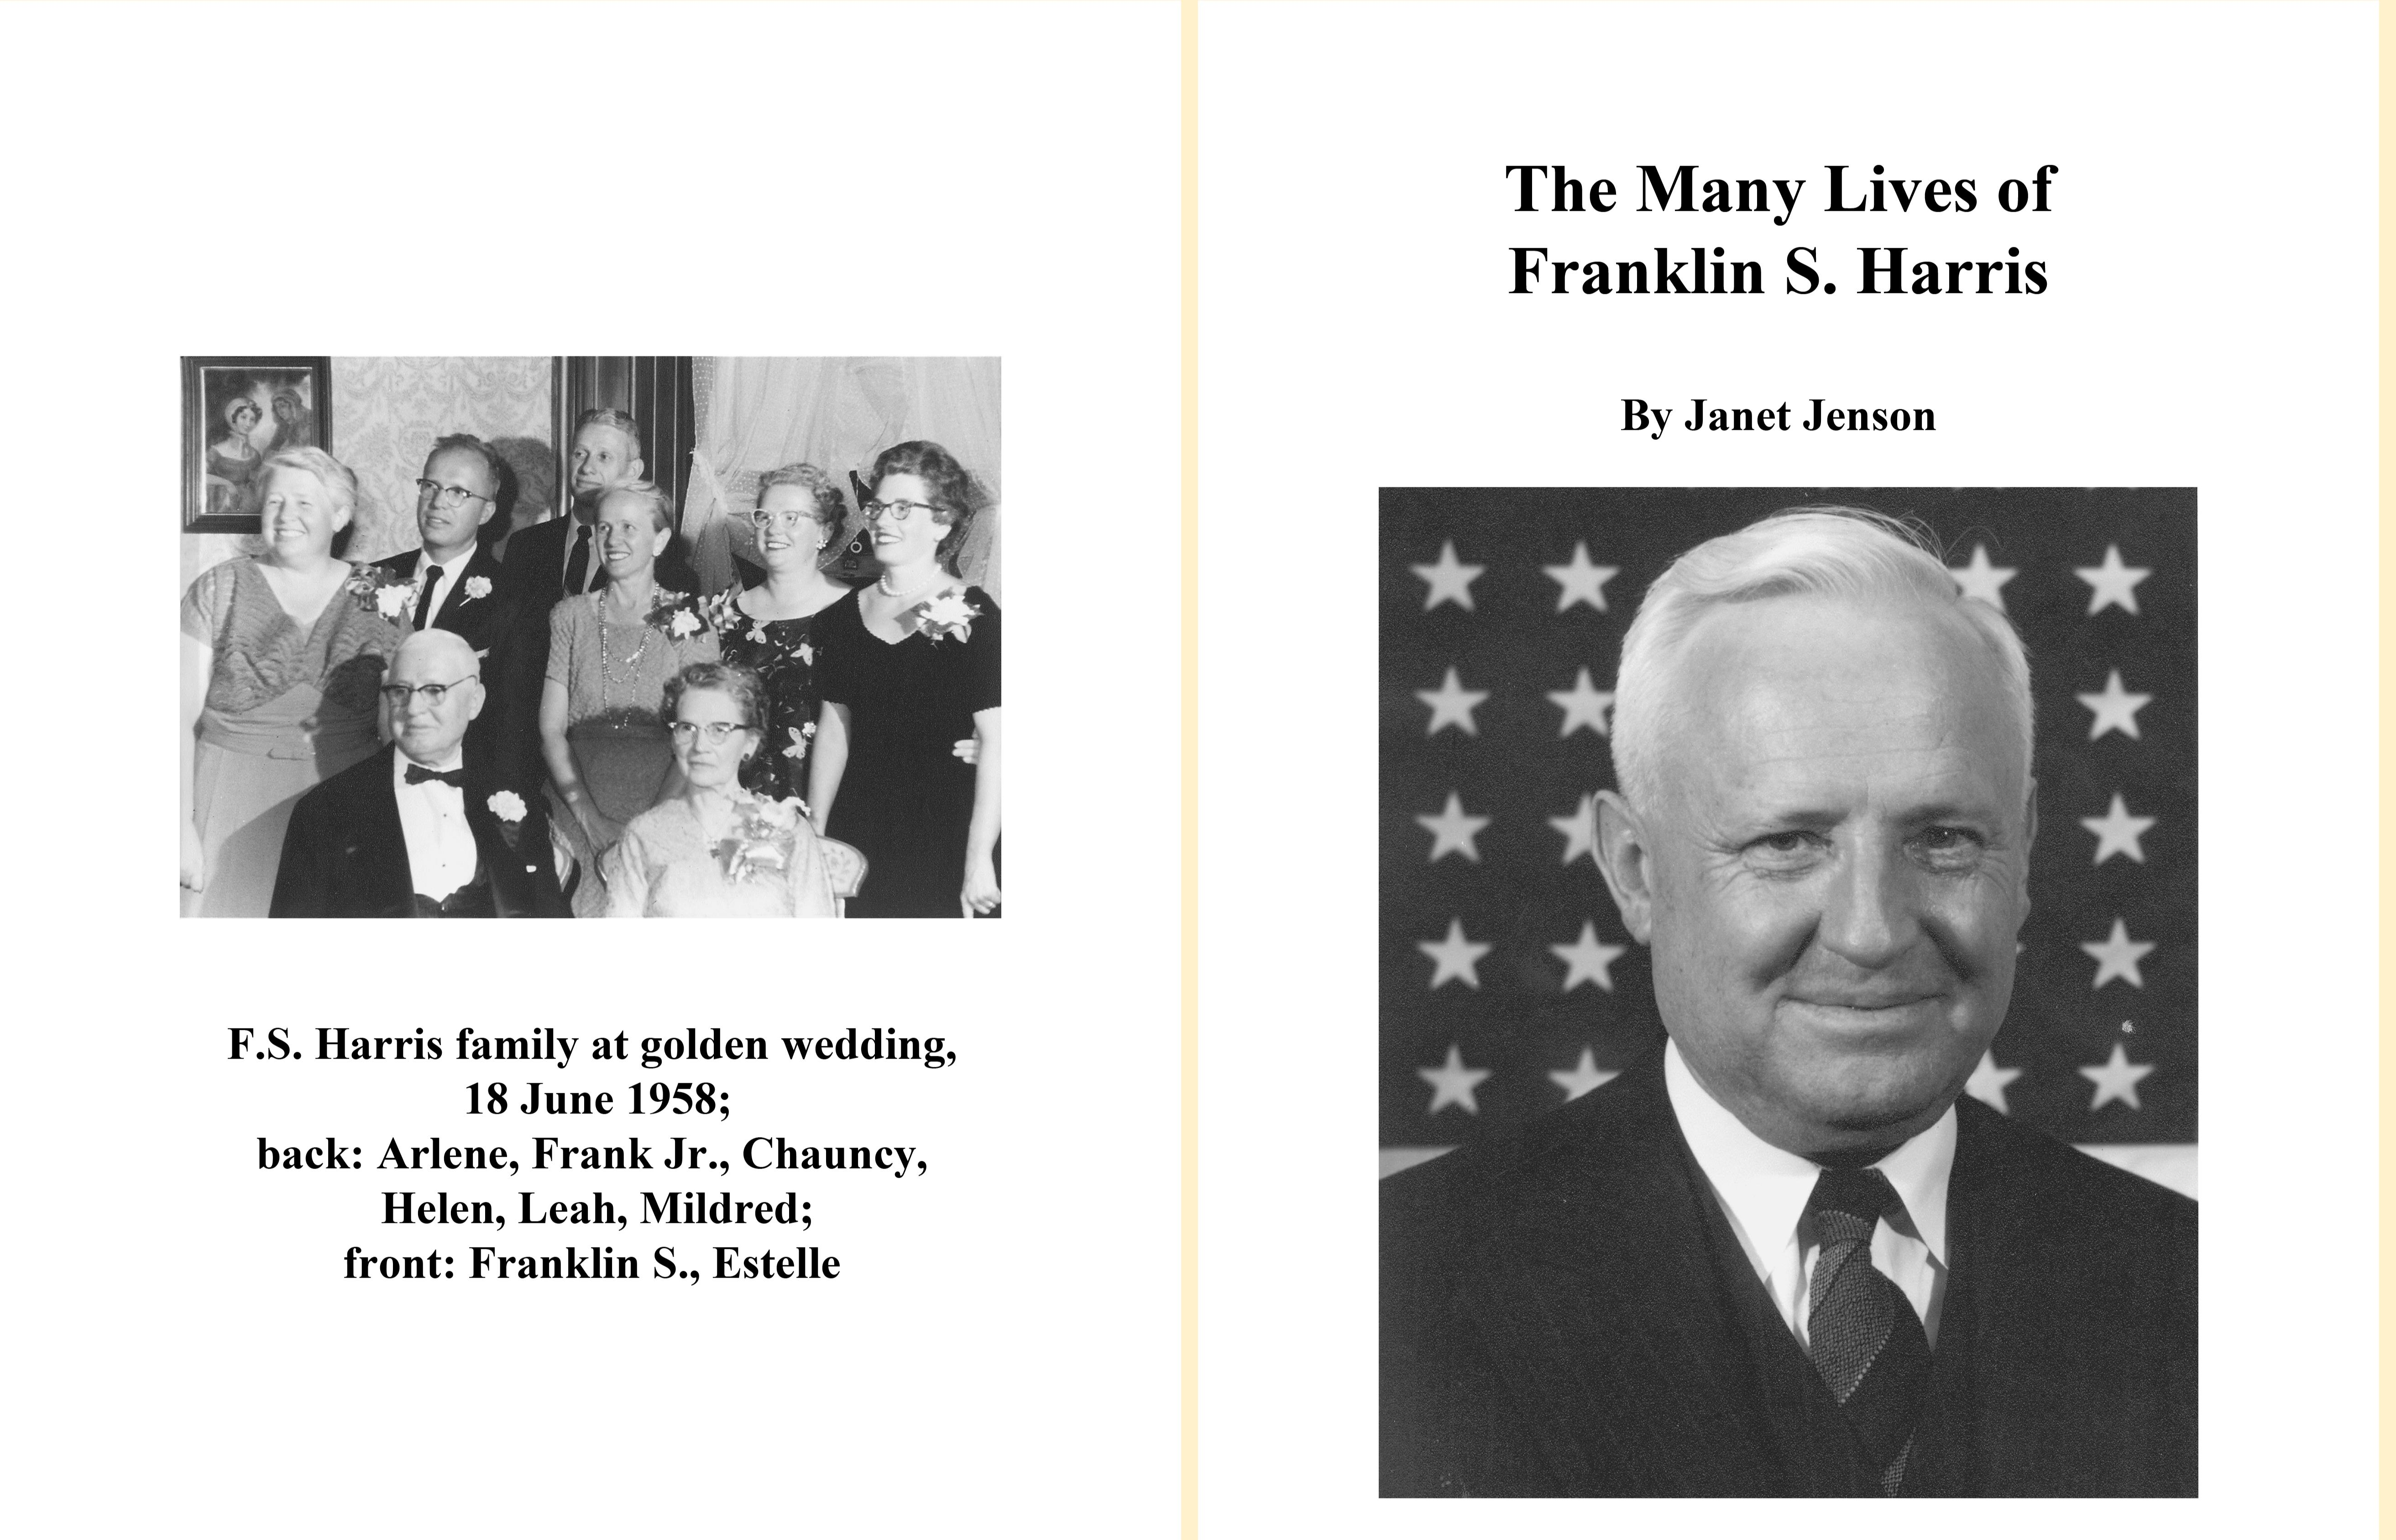 The Many Lives of Franklin S. Harris cover image